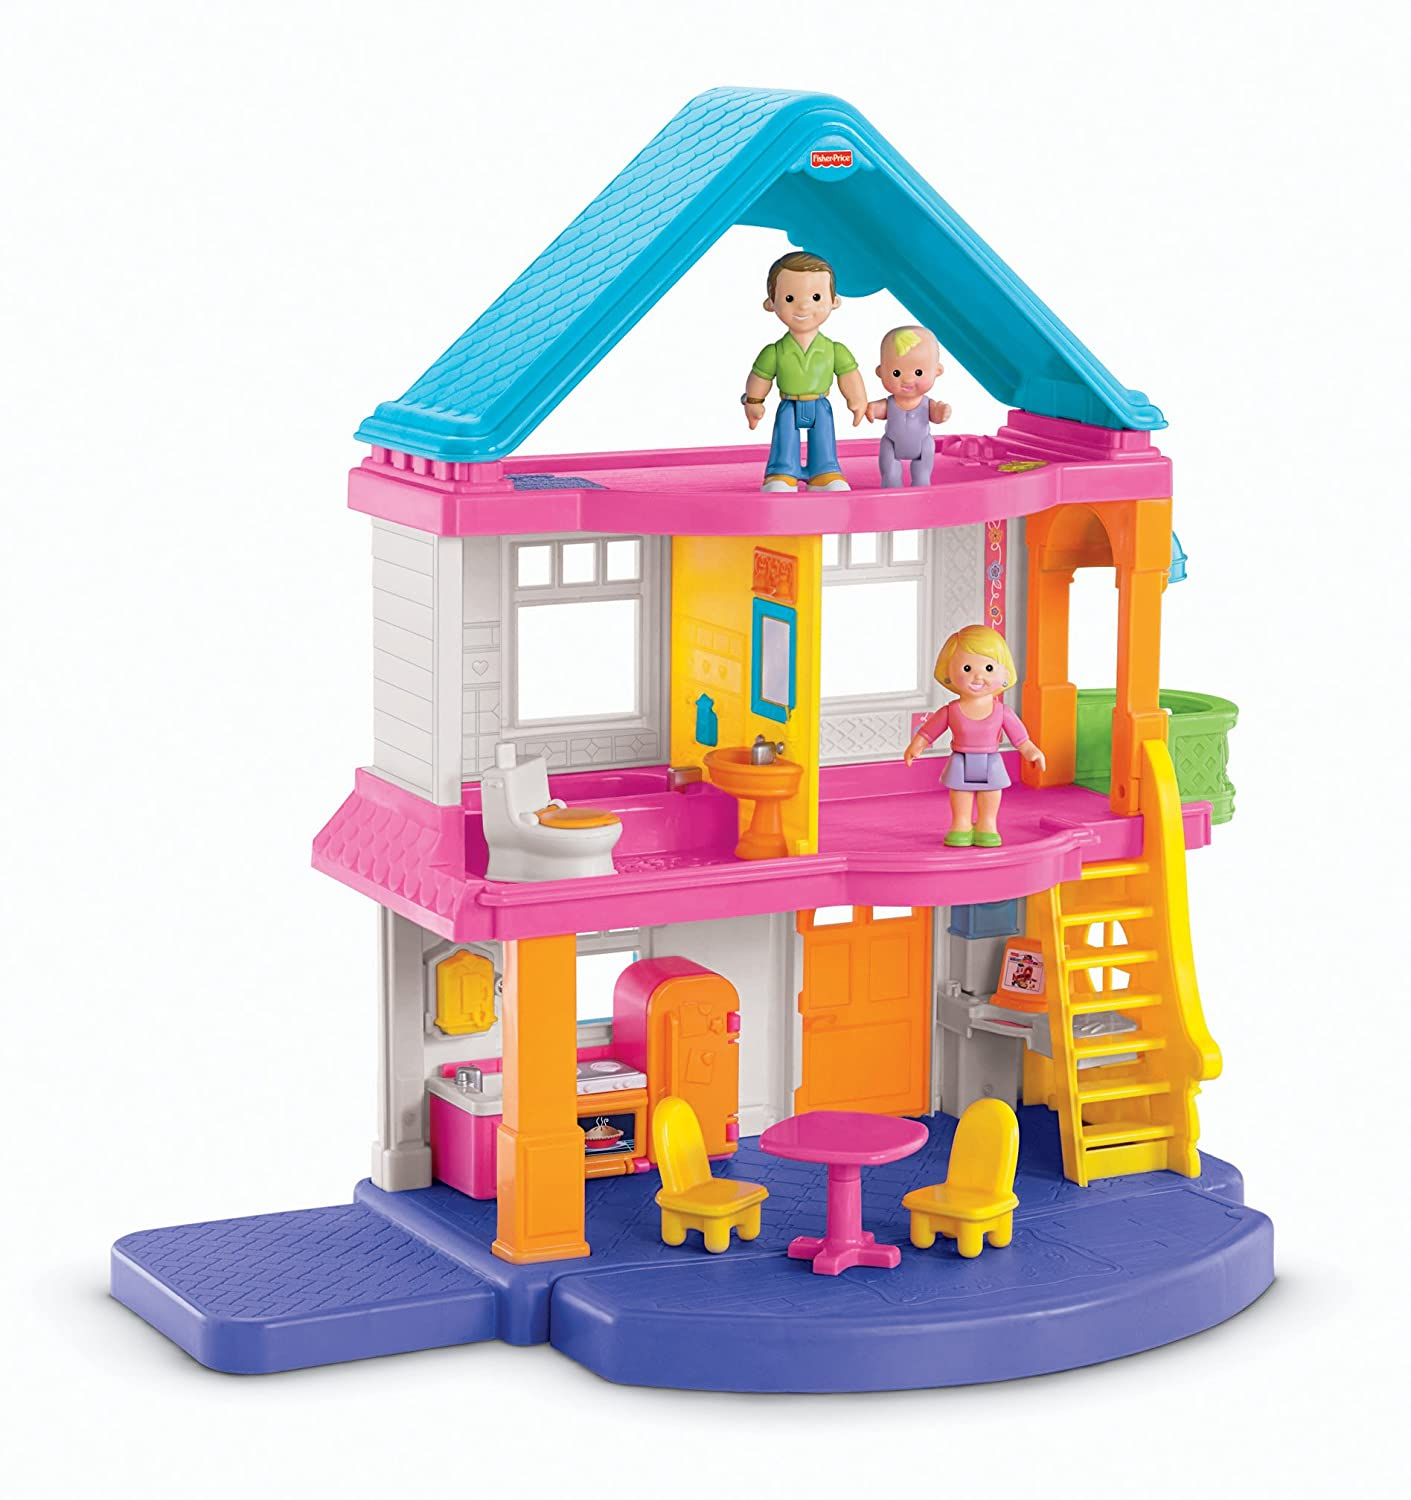 Toddler Dollhouse Fisher Price My First Dollhouse New Free Shipping Ebay